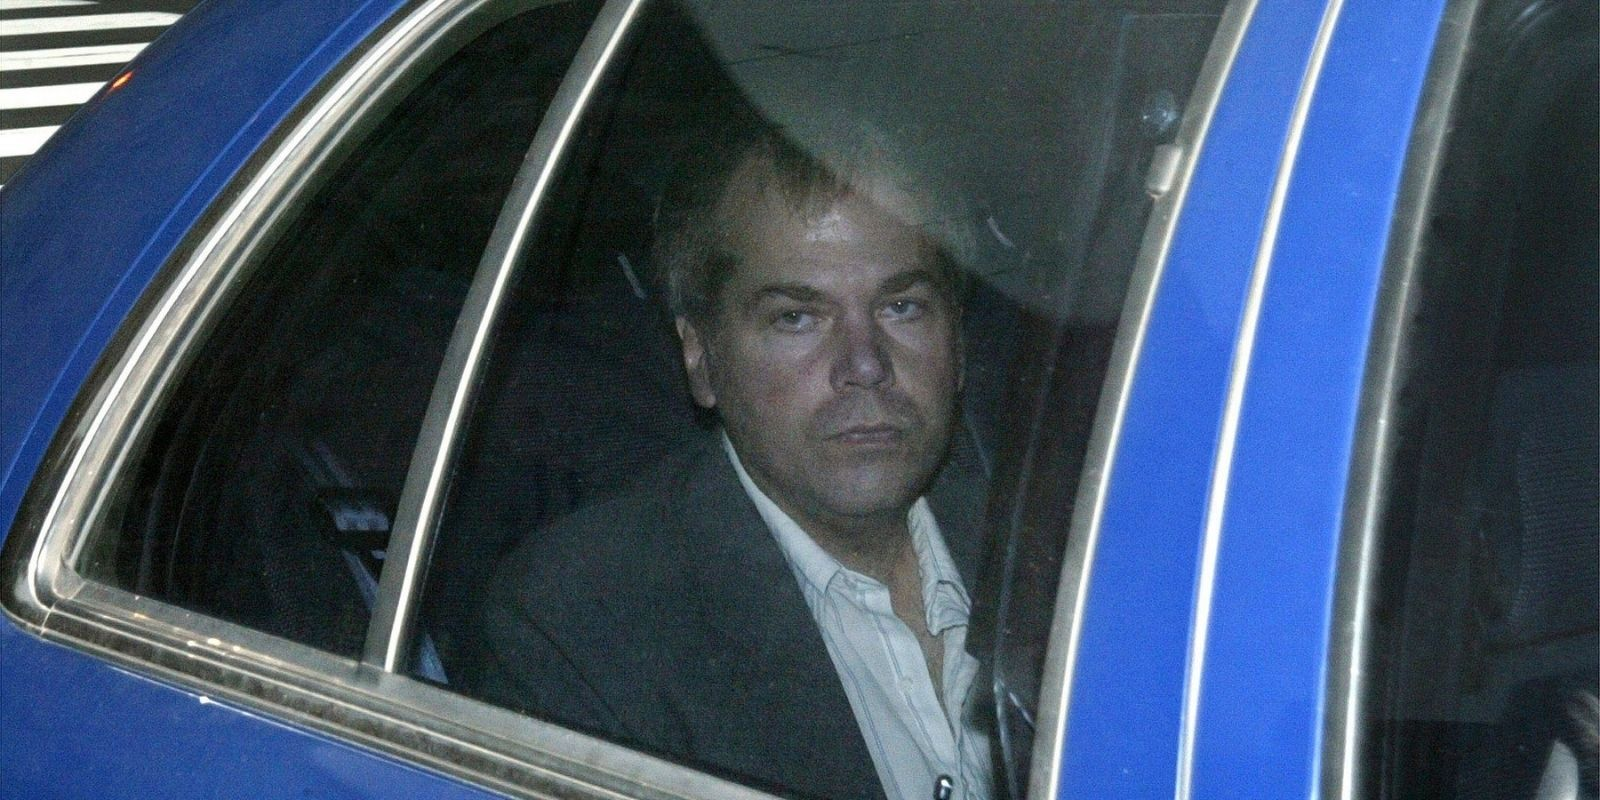 John Hinckley, who shot President Reagan, to be freed on unconditional release